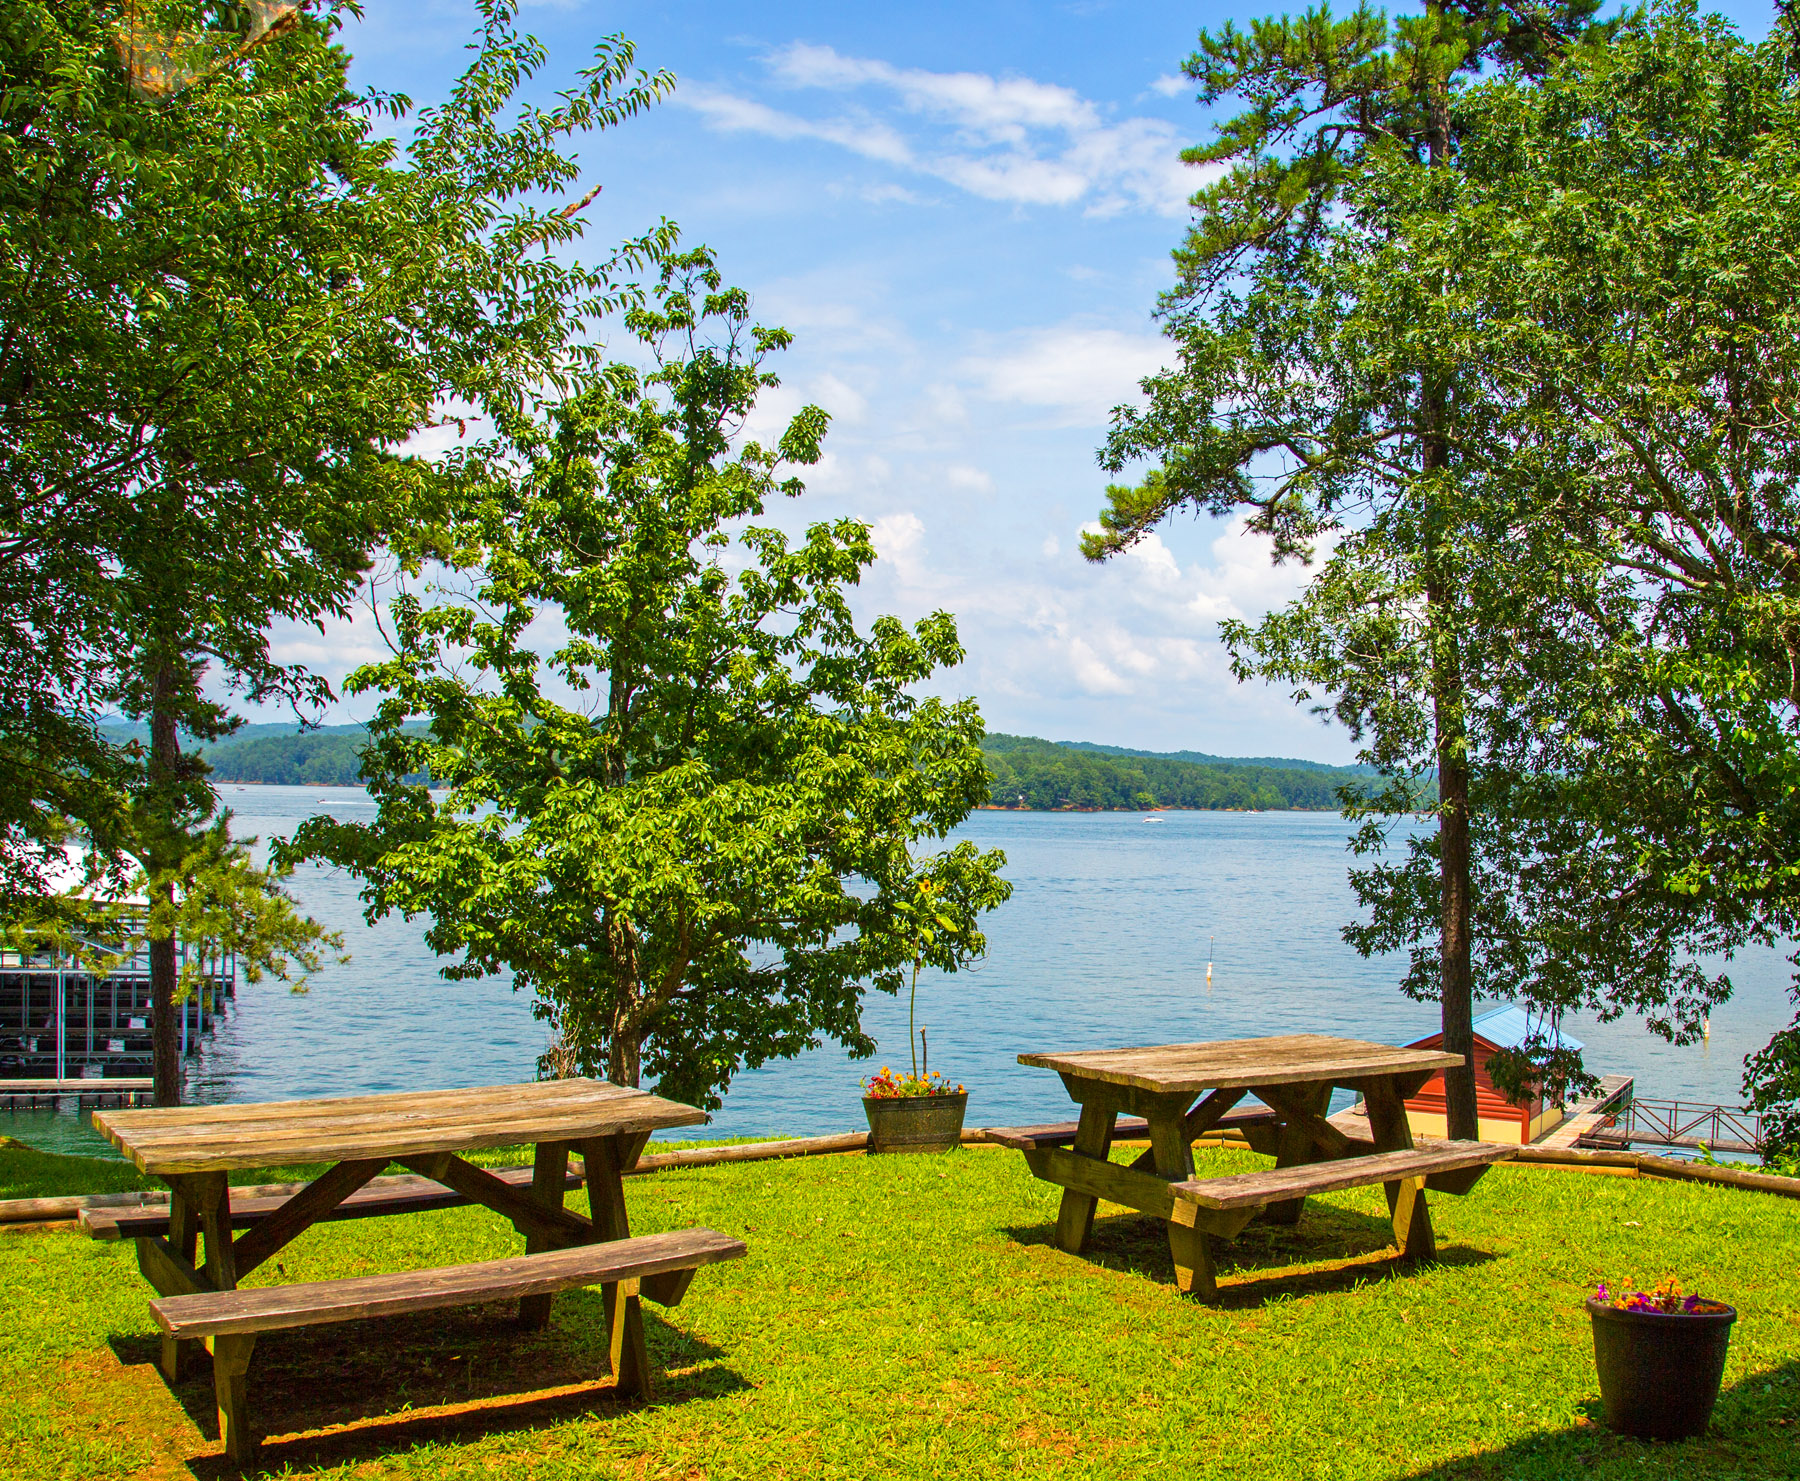 View-of-Carters-Lake-from-the-Marina-Photo-by-Bill-Vanderford